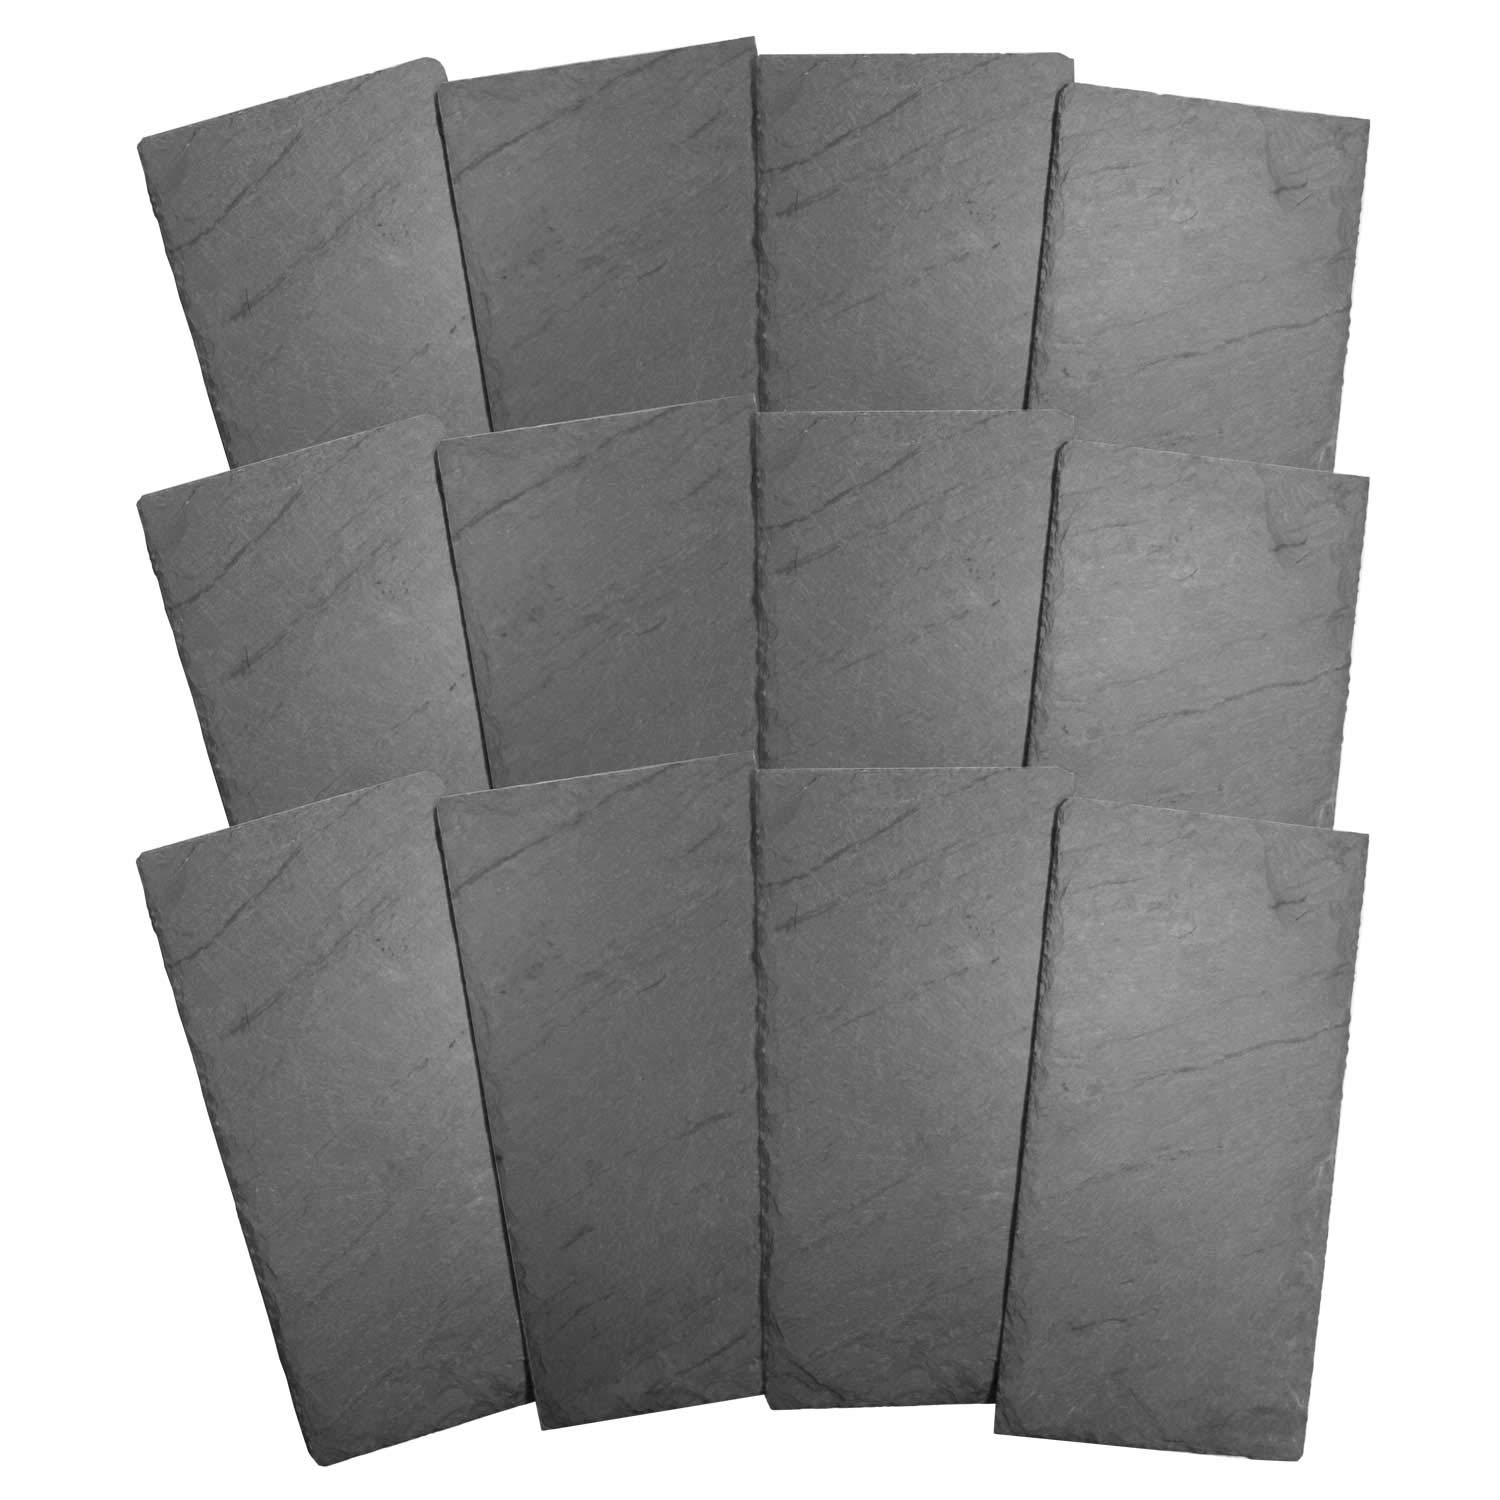 Cohas Slate Food and Cheese Platter Restaurant Pack includes 12 Regular 8 by 16 Inch Boards, Undrilled Gray Slate